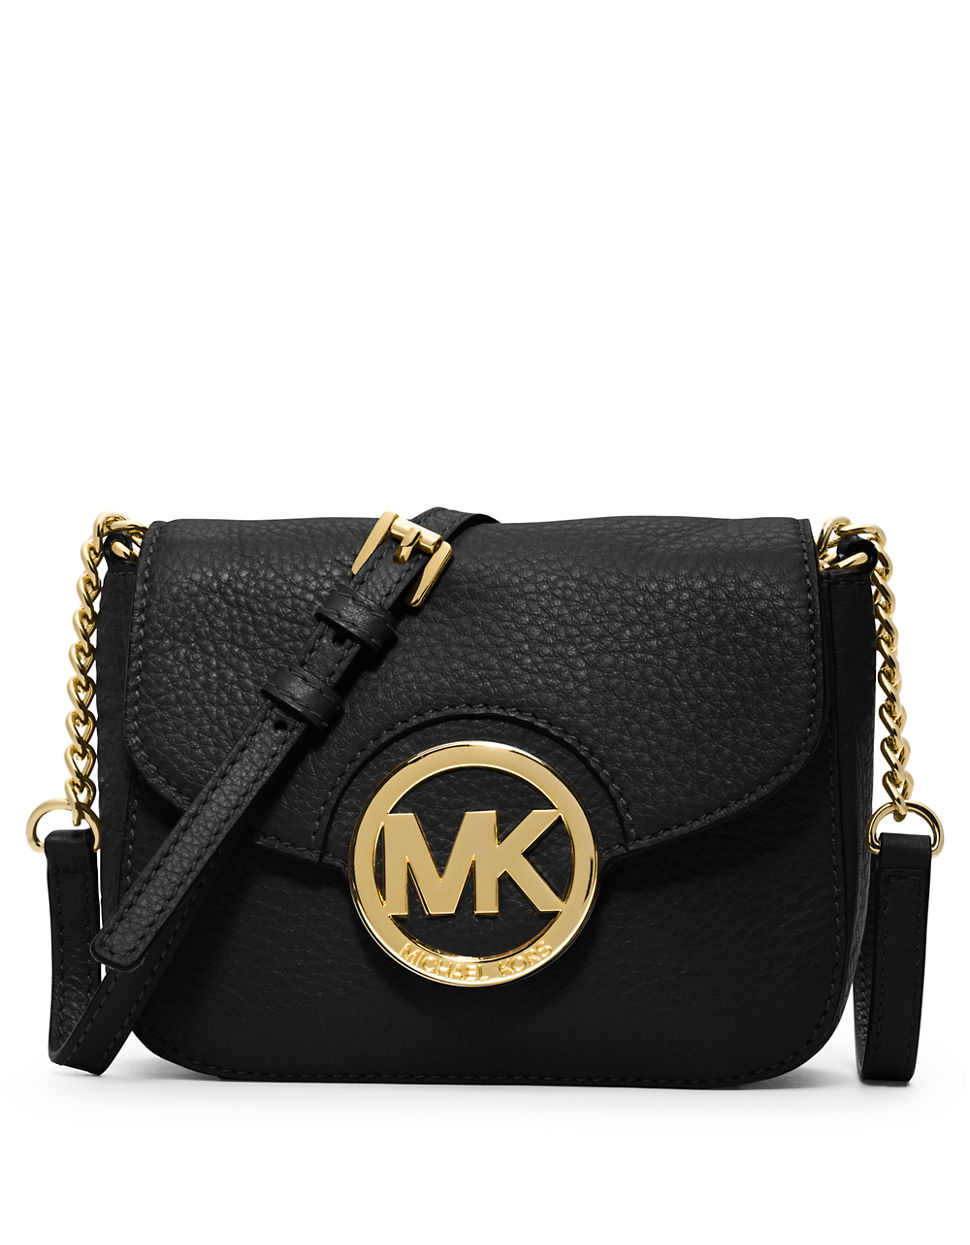 840cedc0d12e06 Gallery. Previously sold at: Lord & Taylor · Women's Michael By Michael  Kors Fulton